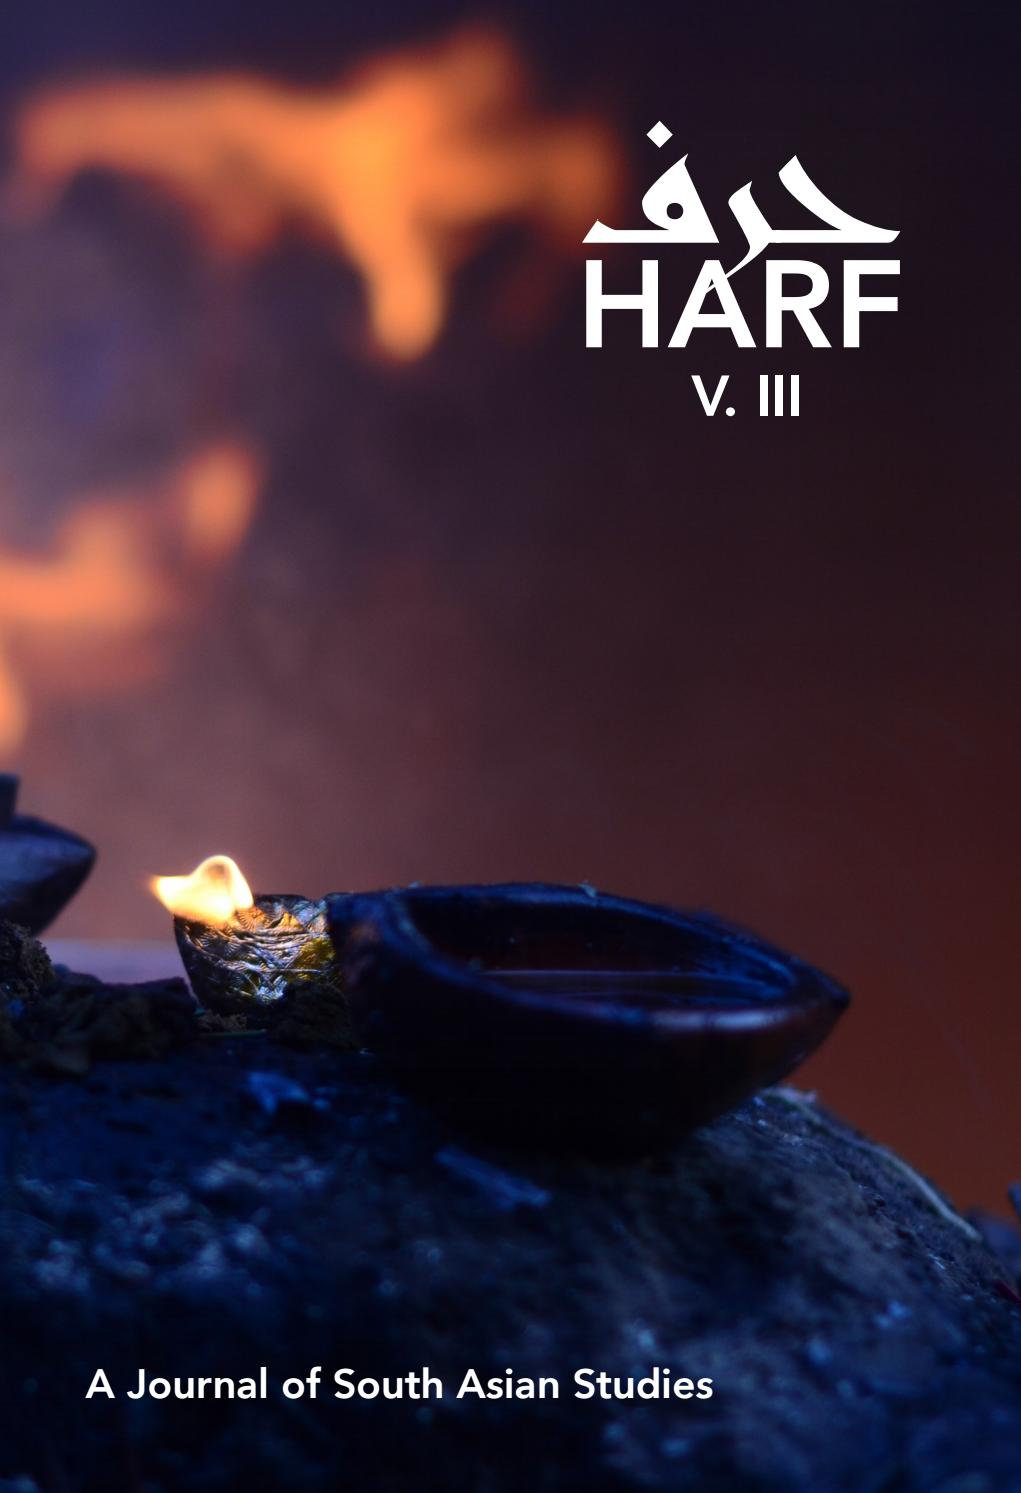 Harf — Volume Three by Harf: A Journal of South Asian